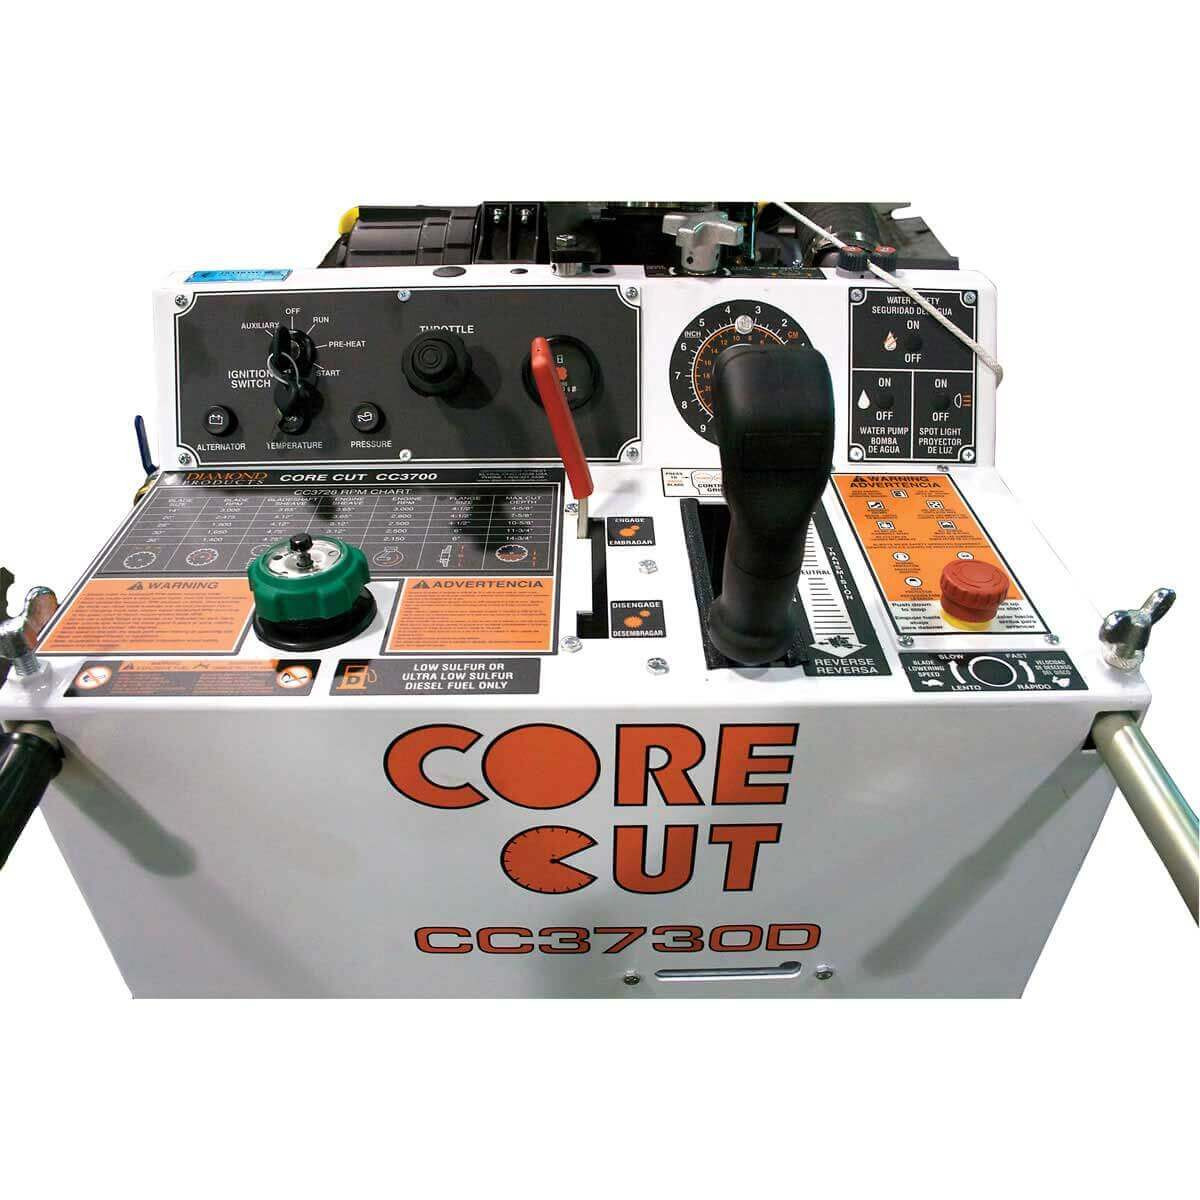 Core Cut CC3700 Control Panel